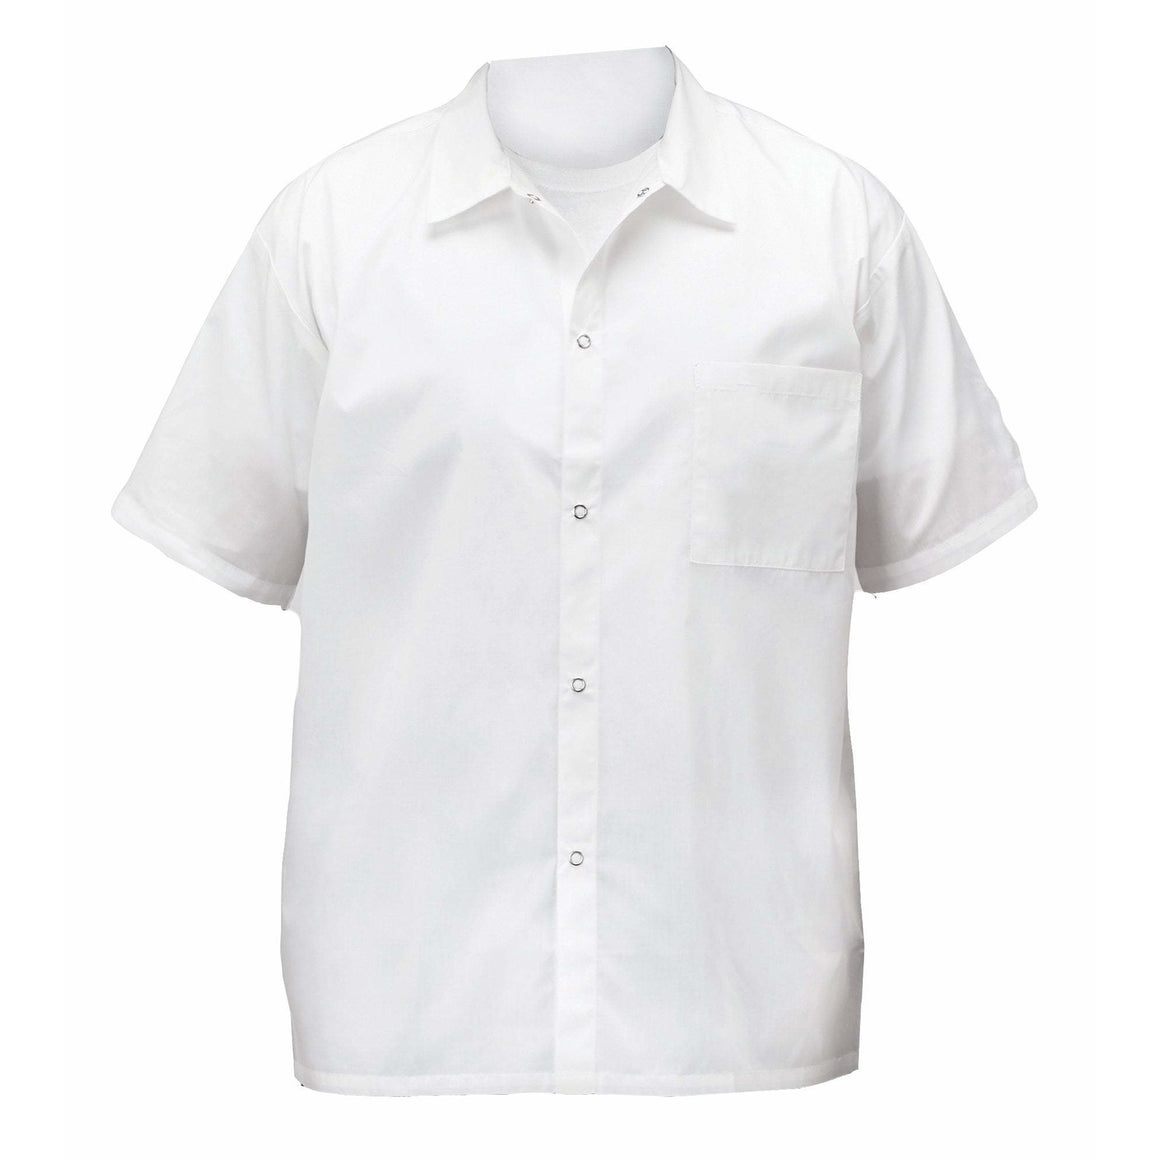 Winco - UNF-1WXXL - Chef shirts, white, 2X - Apparel